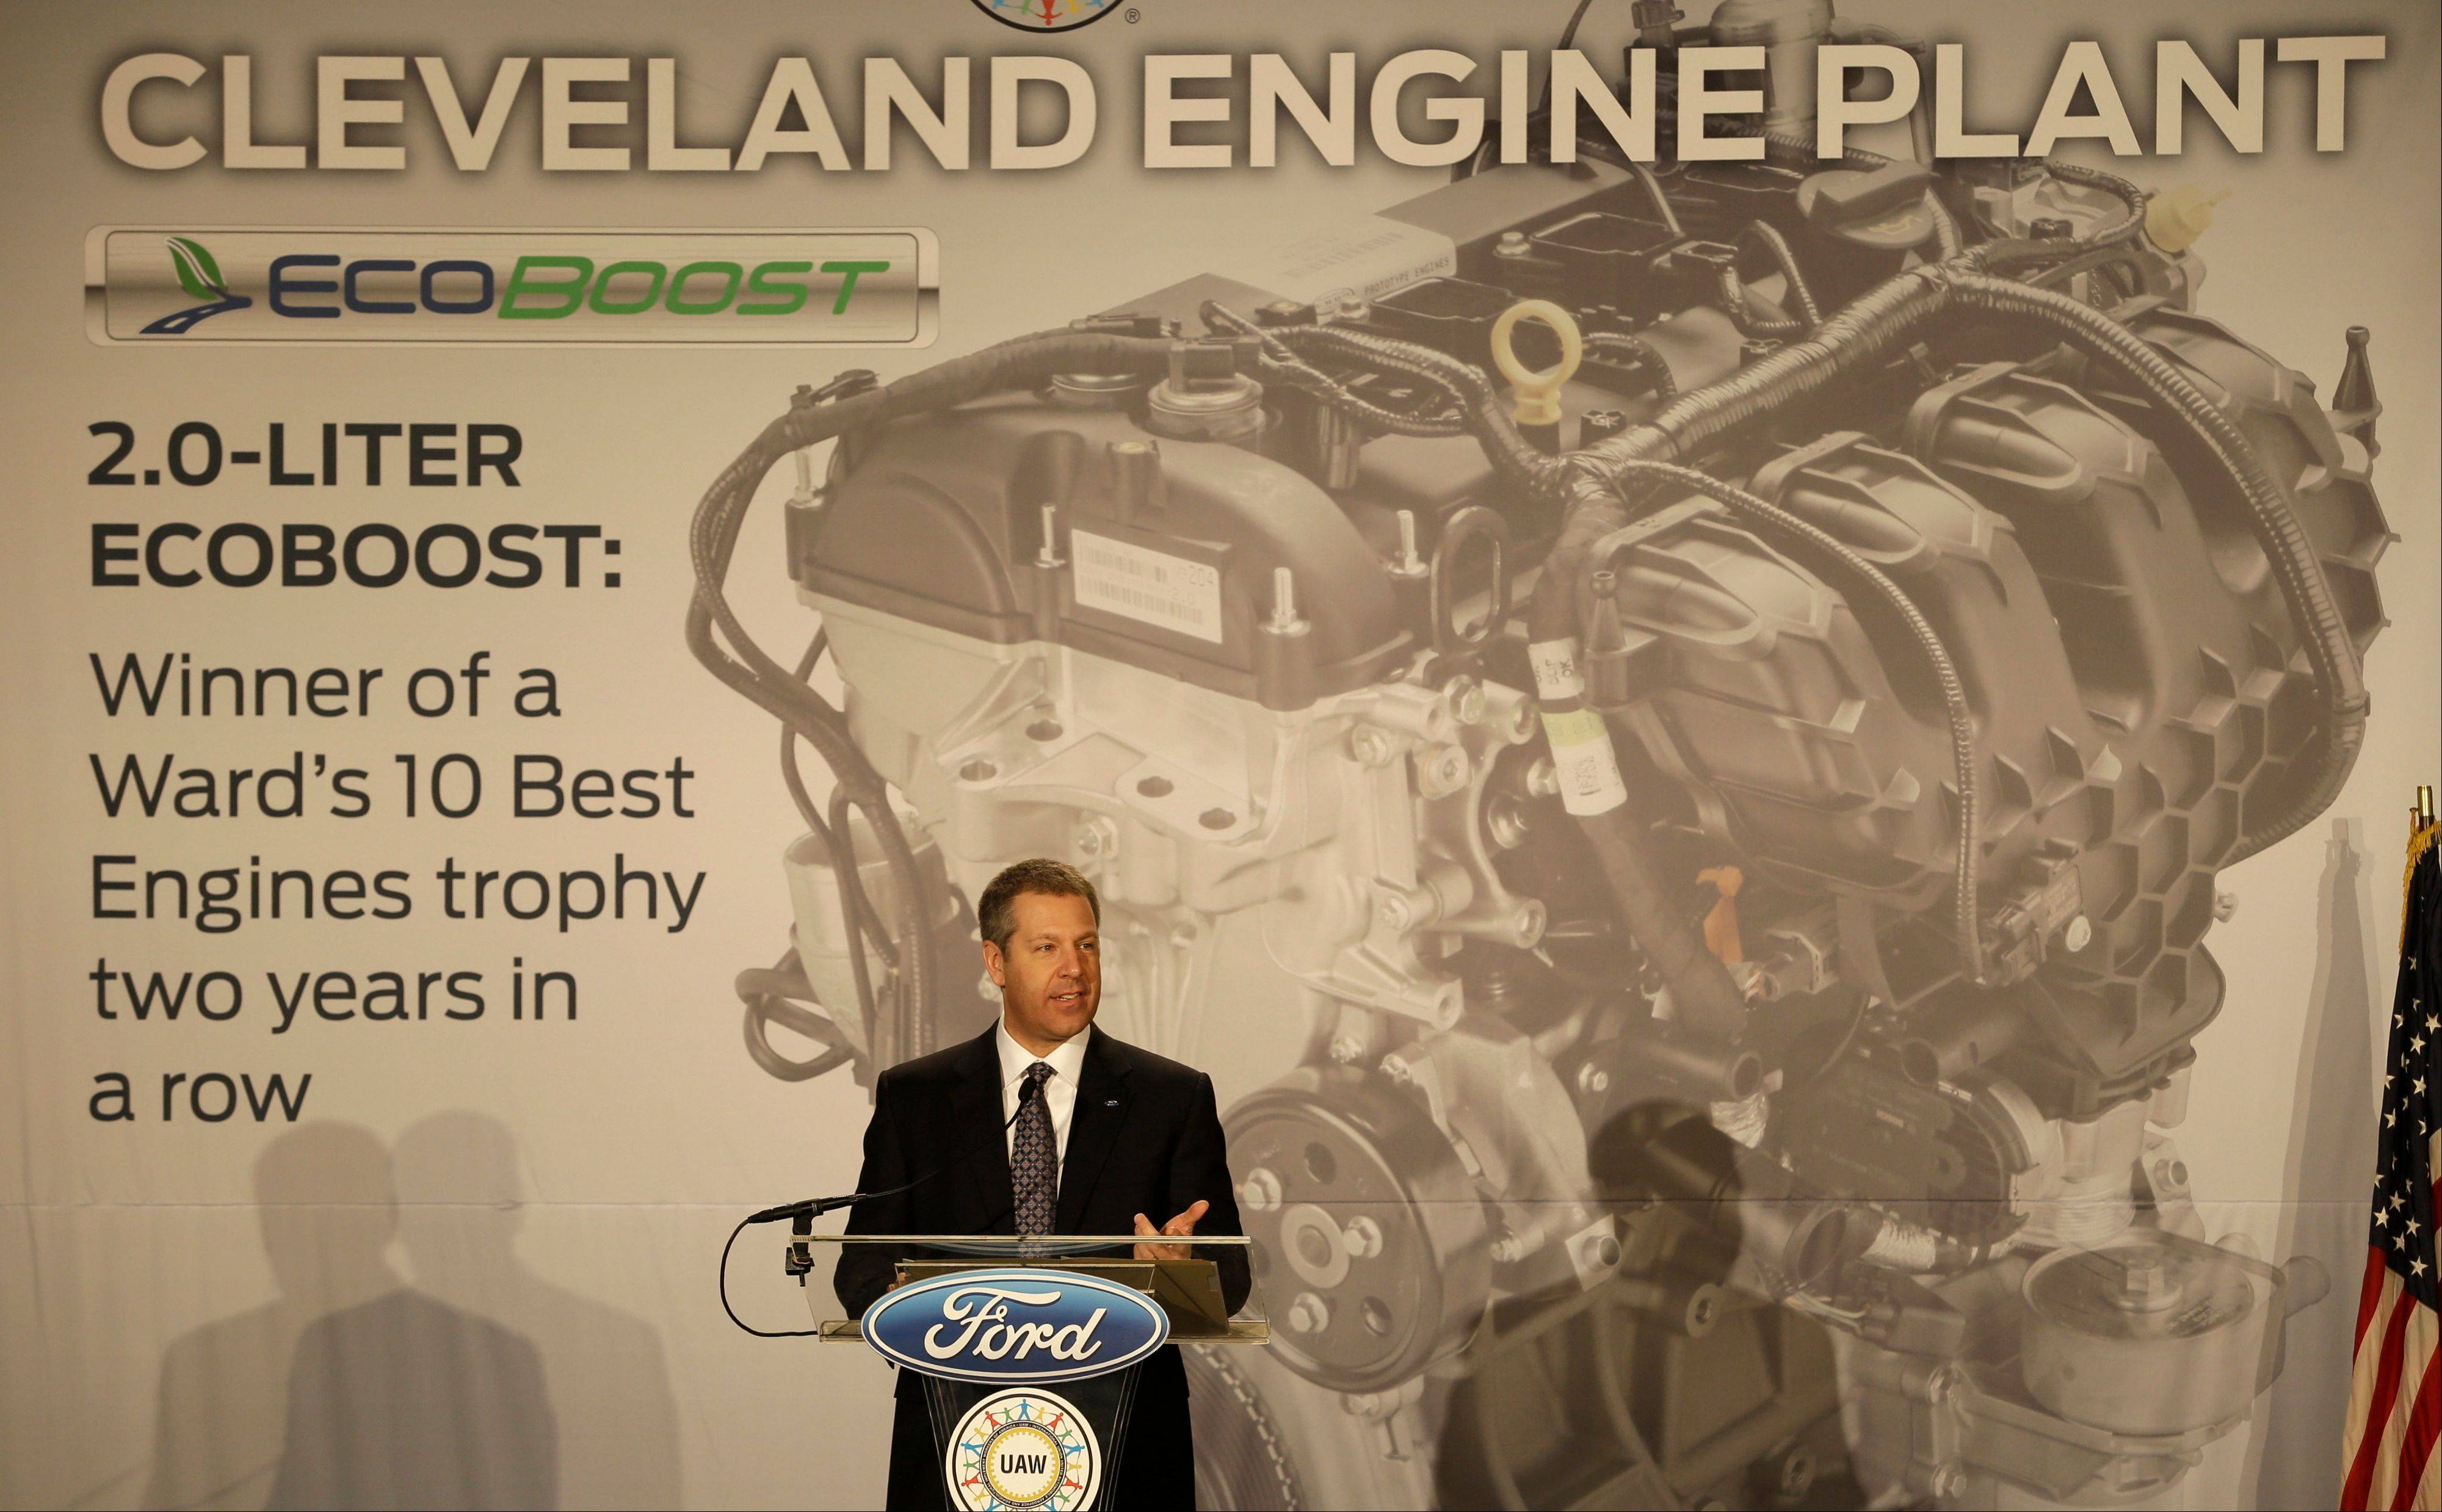 Joe Hinrichs, Ford's President of the Americas, announces plans to build the 2.0-liter EcoBoost engine at the Ford Cleveland Engine Plant on Thursday in Brook Park, Ohio. Ford is moving production of a popular small engine from Spain to Cleveland as sales of four-cylinder motors continue to rise.